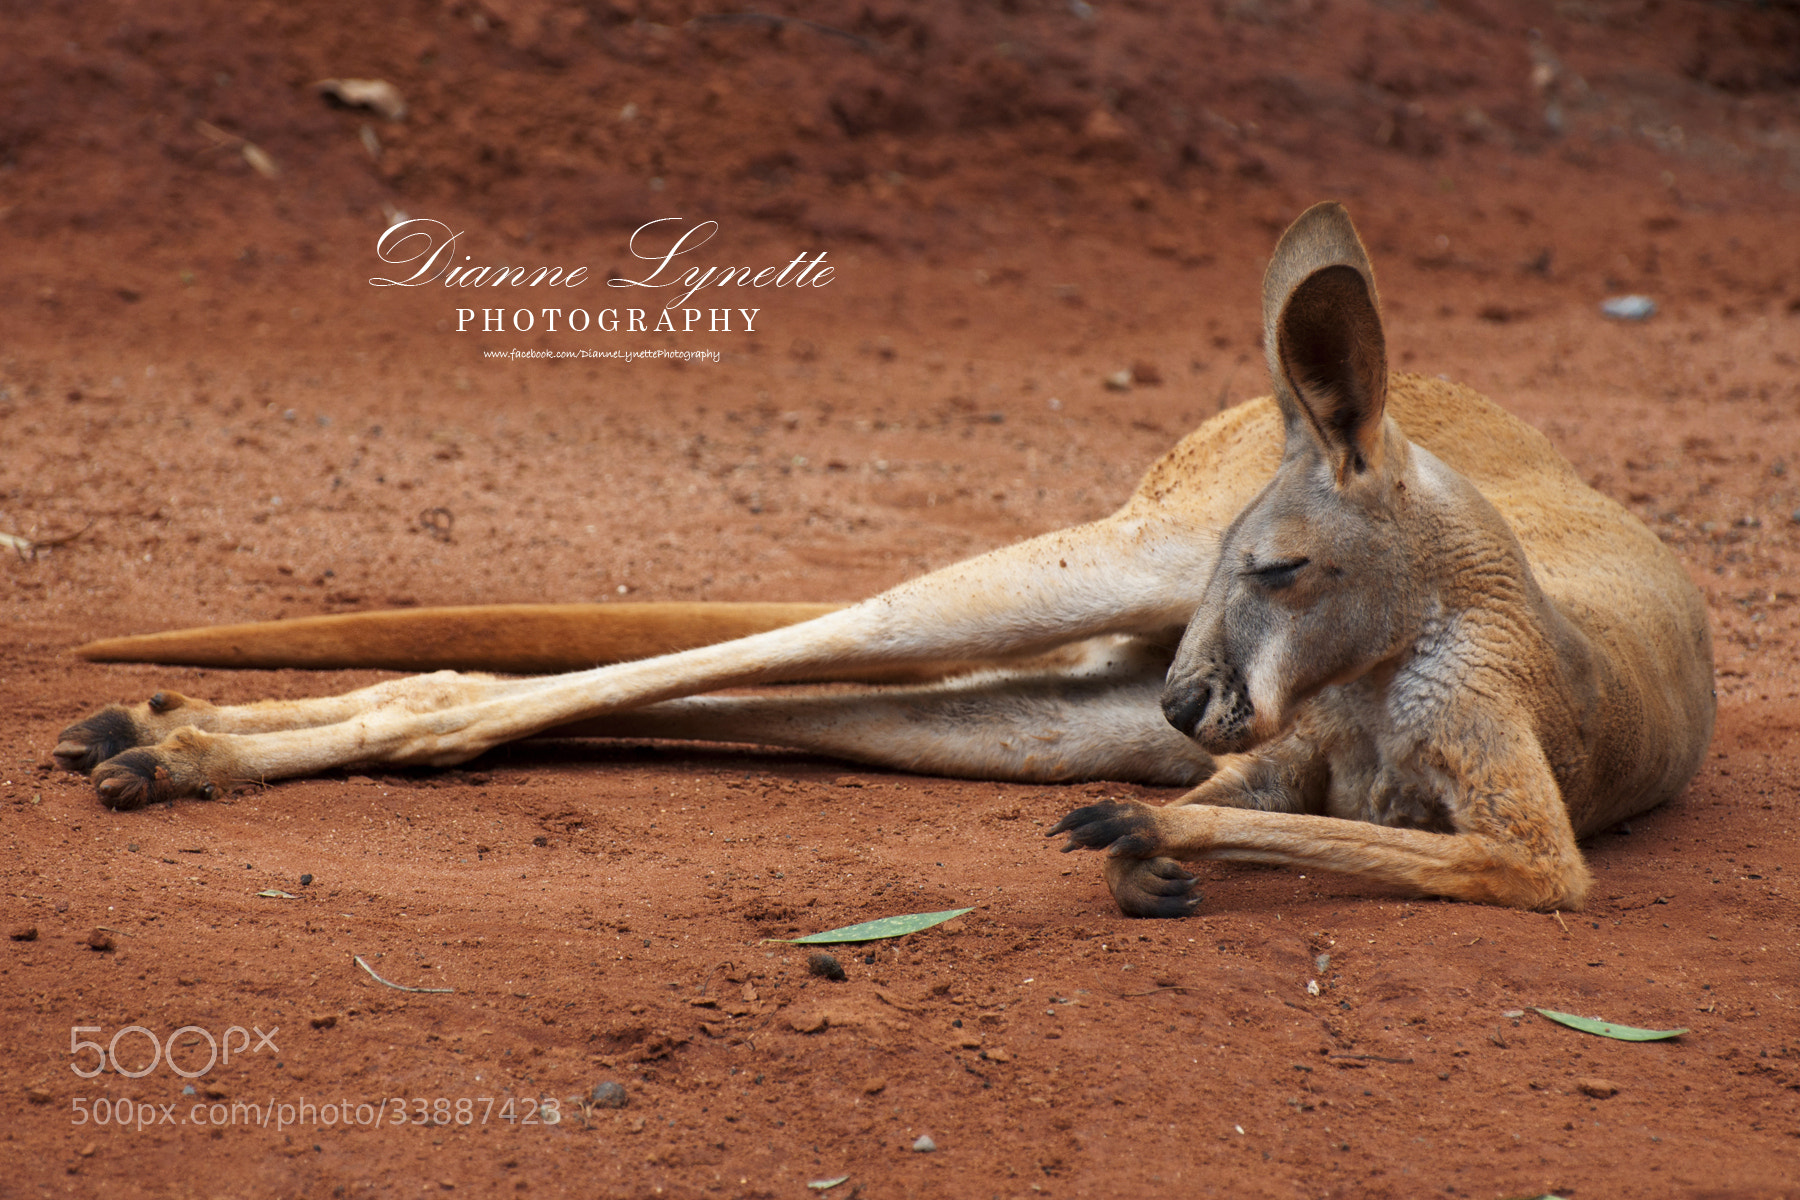 Photograph Kangaroo by Dianne Lynette on 500px